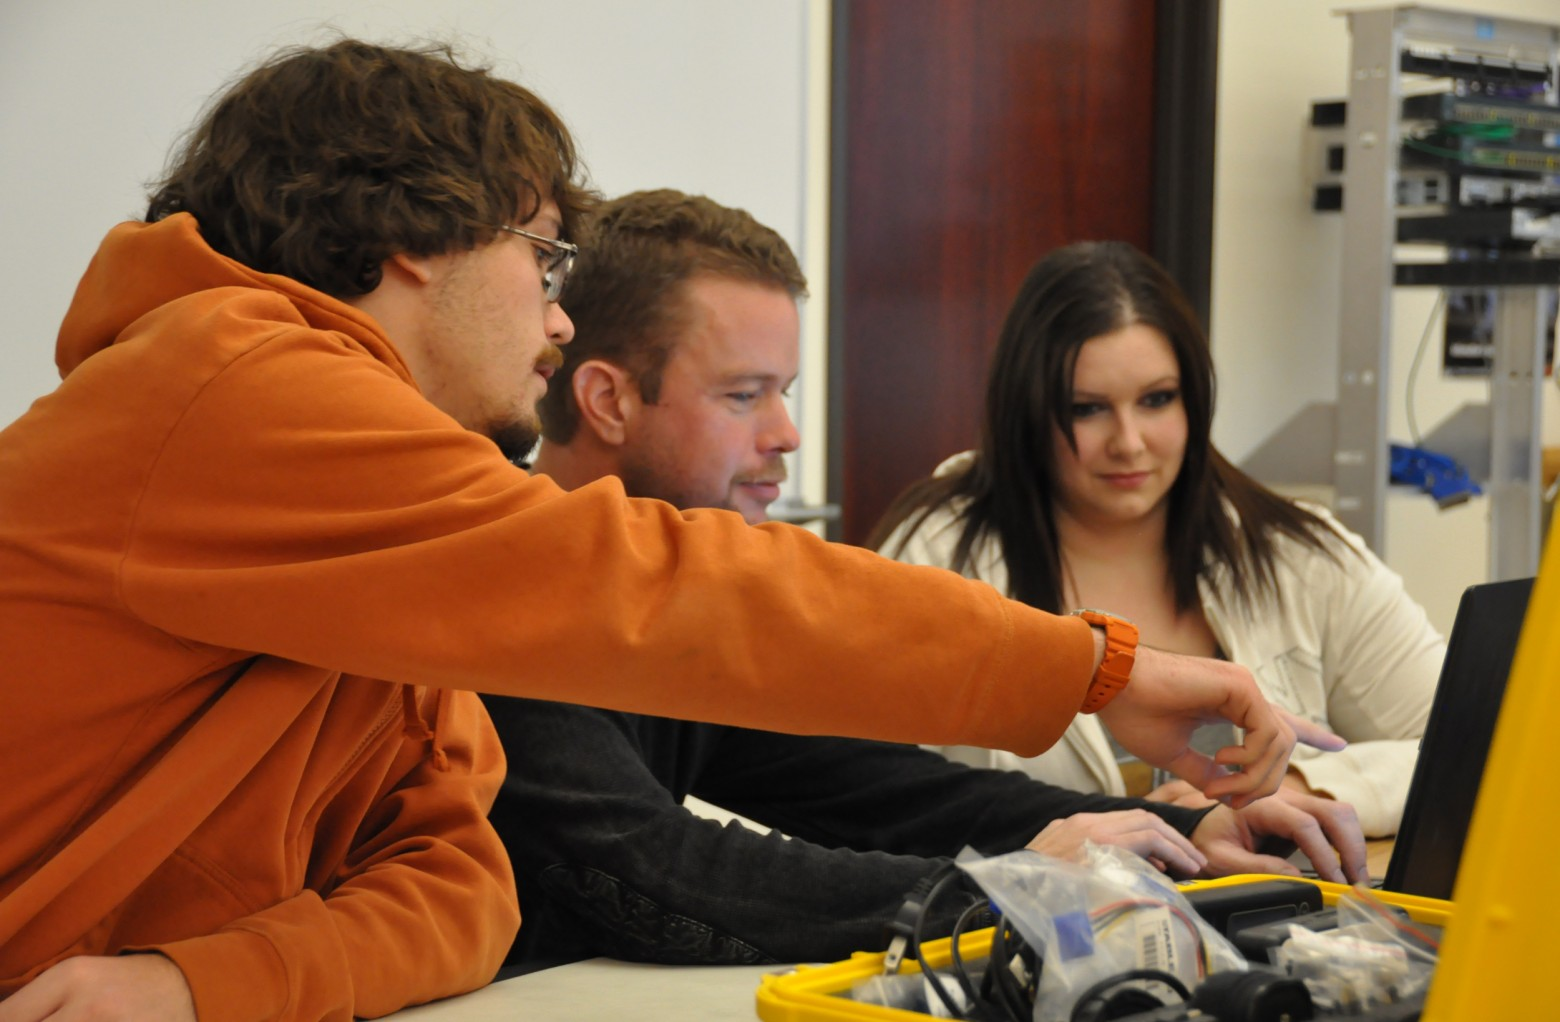 Information Security and Digital Forensics Program, CWI